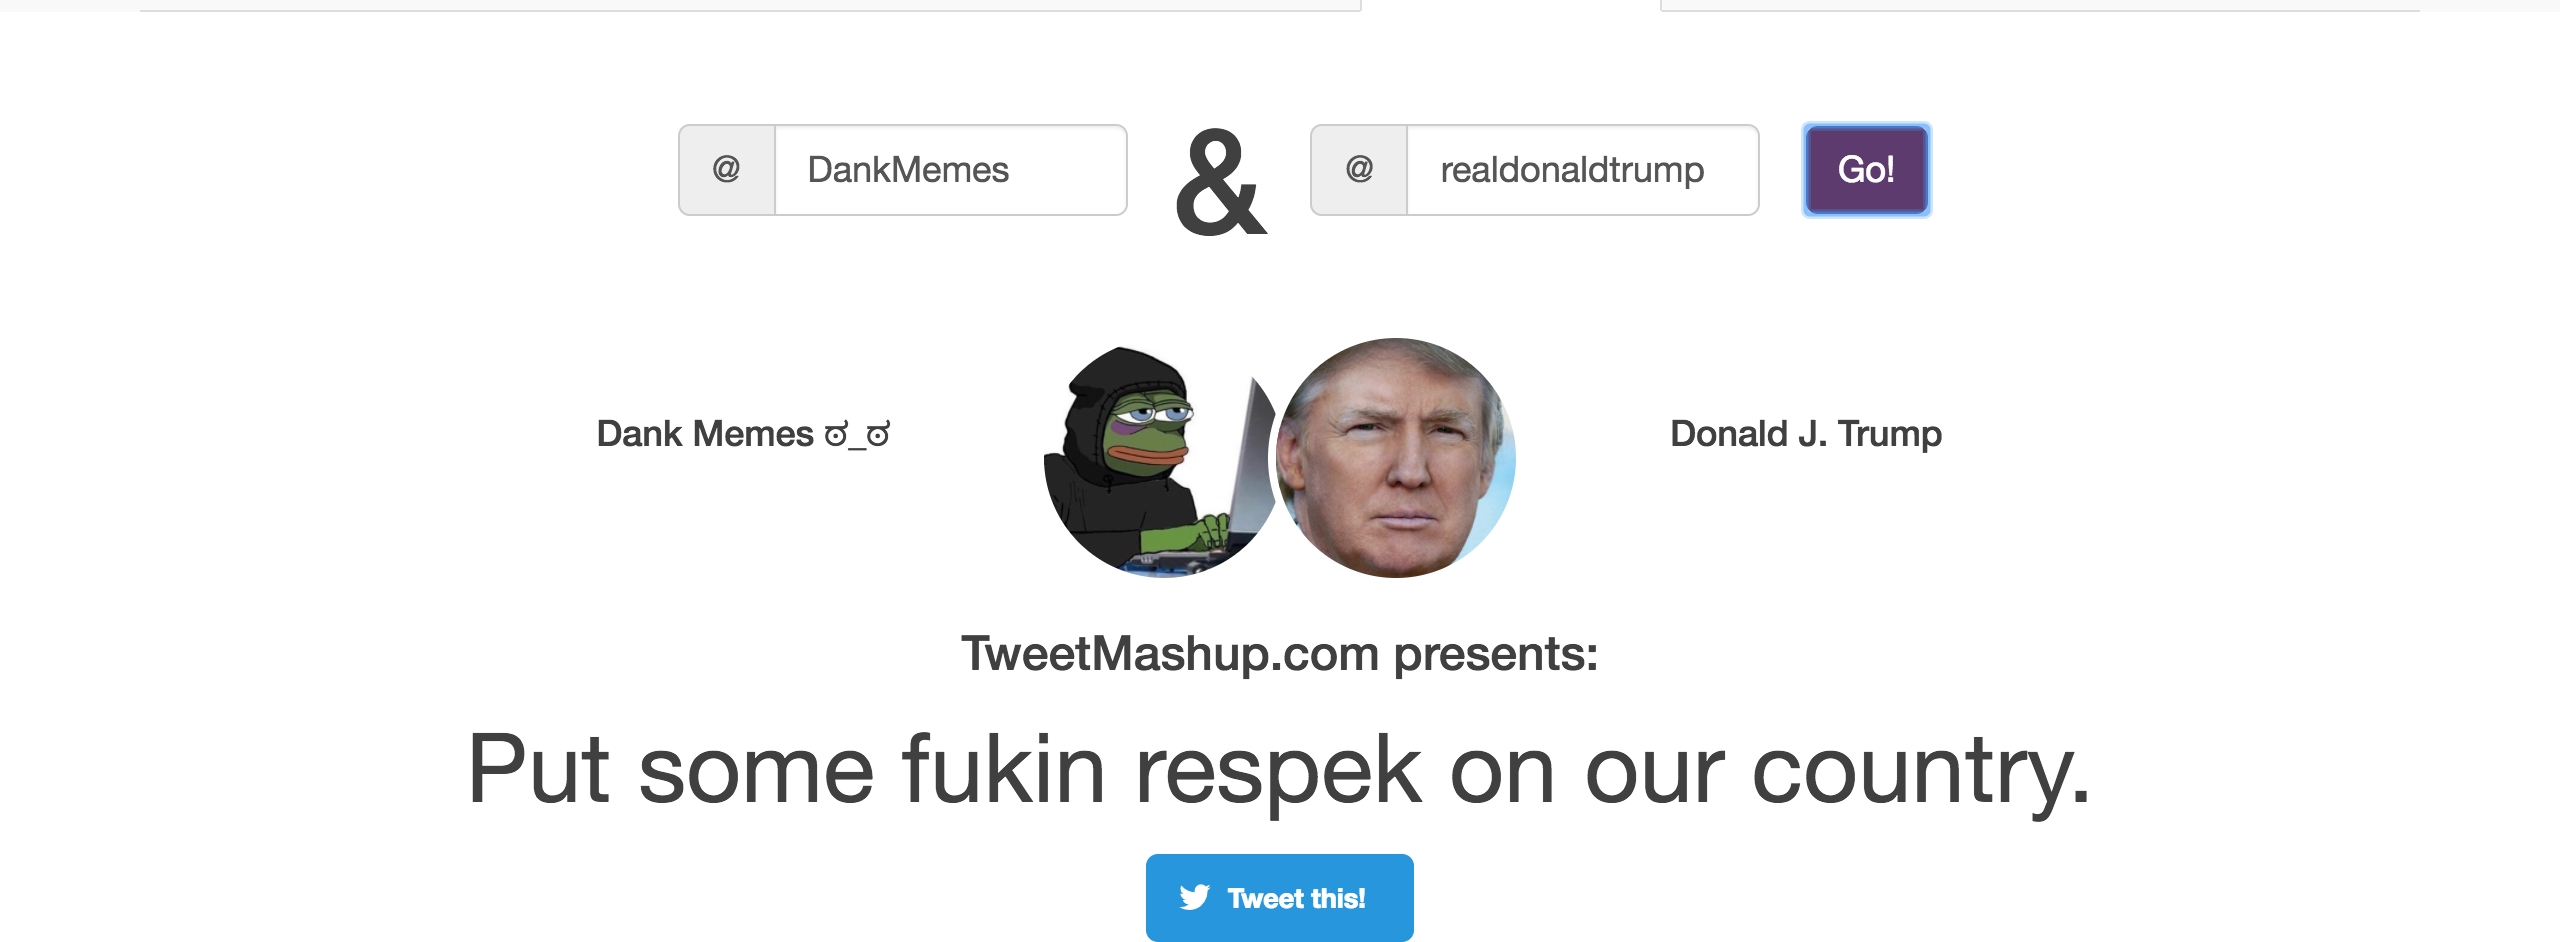 f61 tweet mashup donald trump and dank memes tweet mashup know